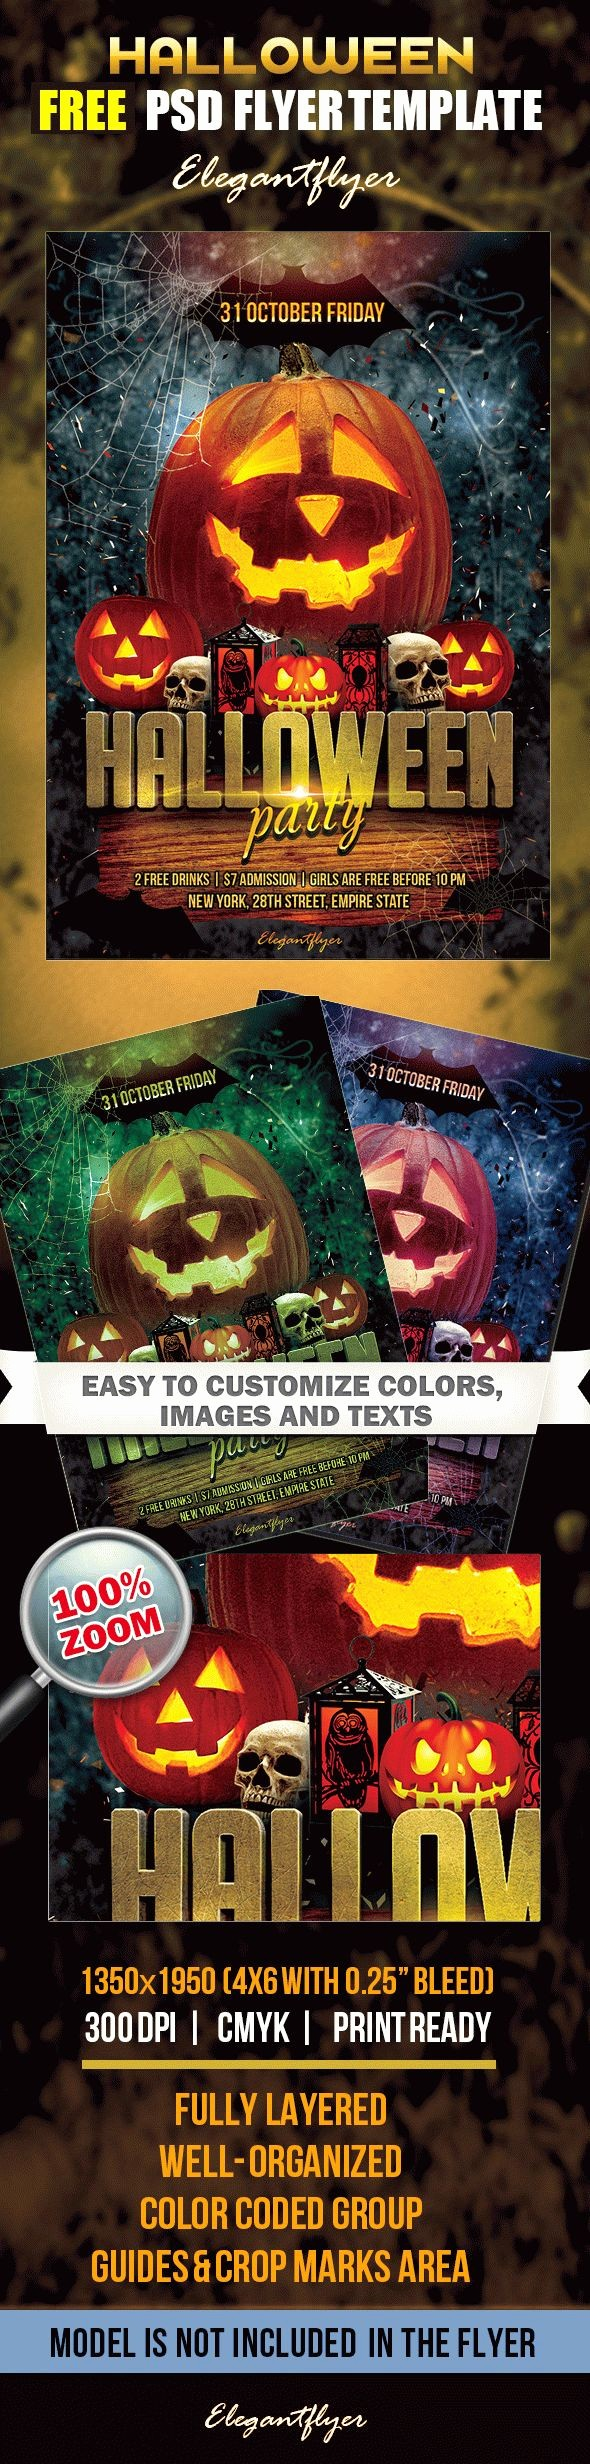 Free Halloween Party Flyer Templates Best Of Halloween Party – Free Flyer Psd Template – by Elegantflyer